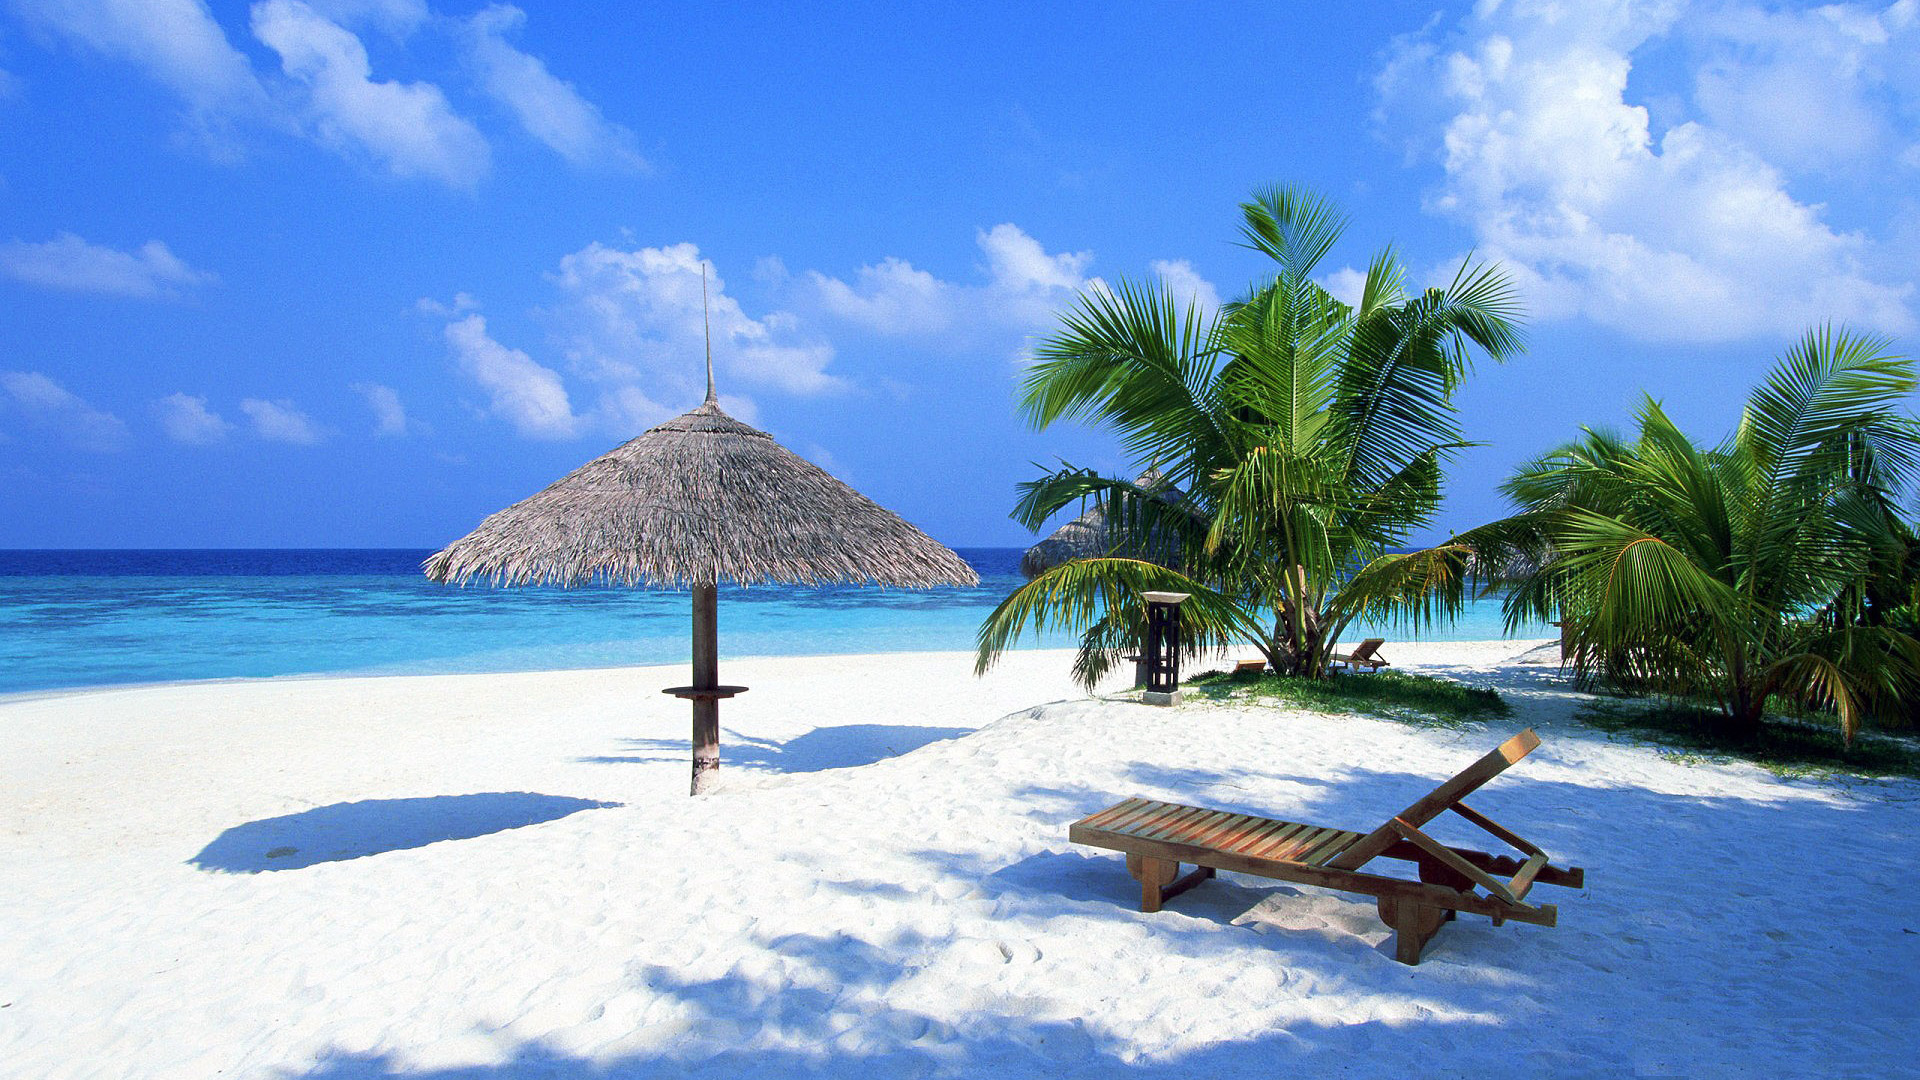 marari-beach-resort-wallpaper-01